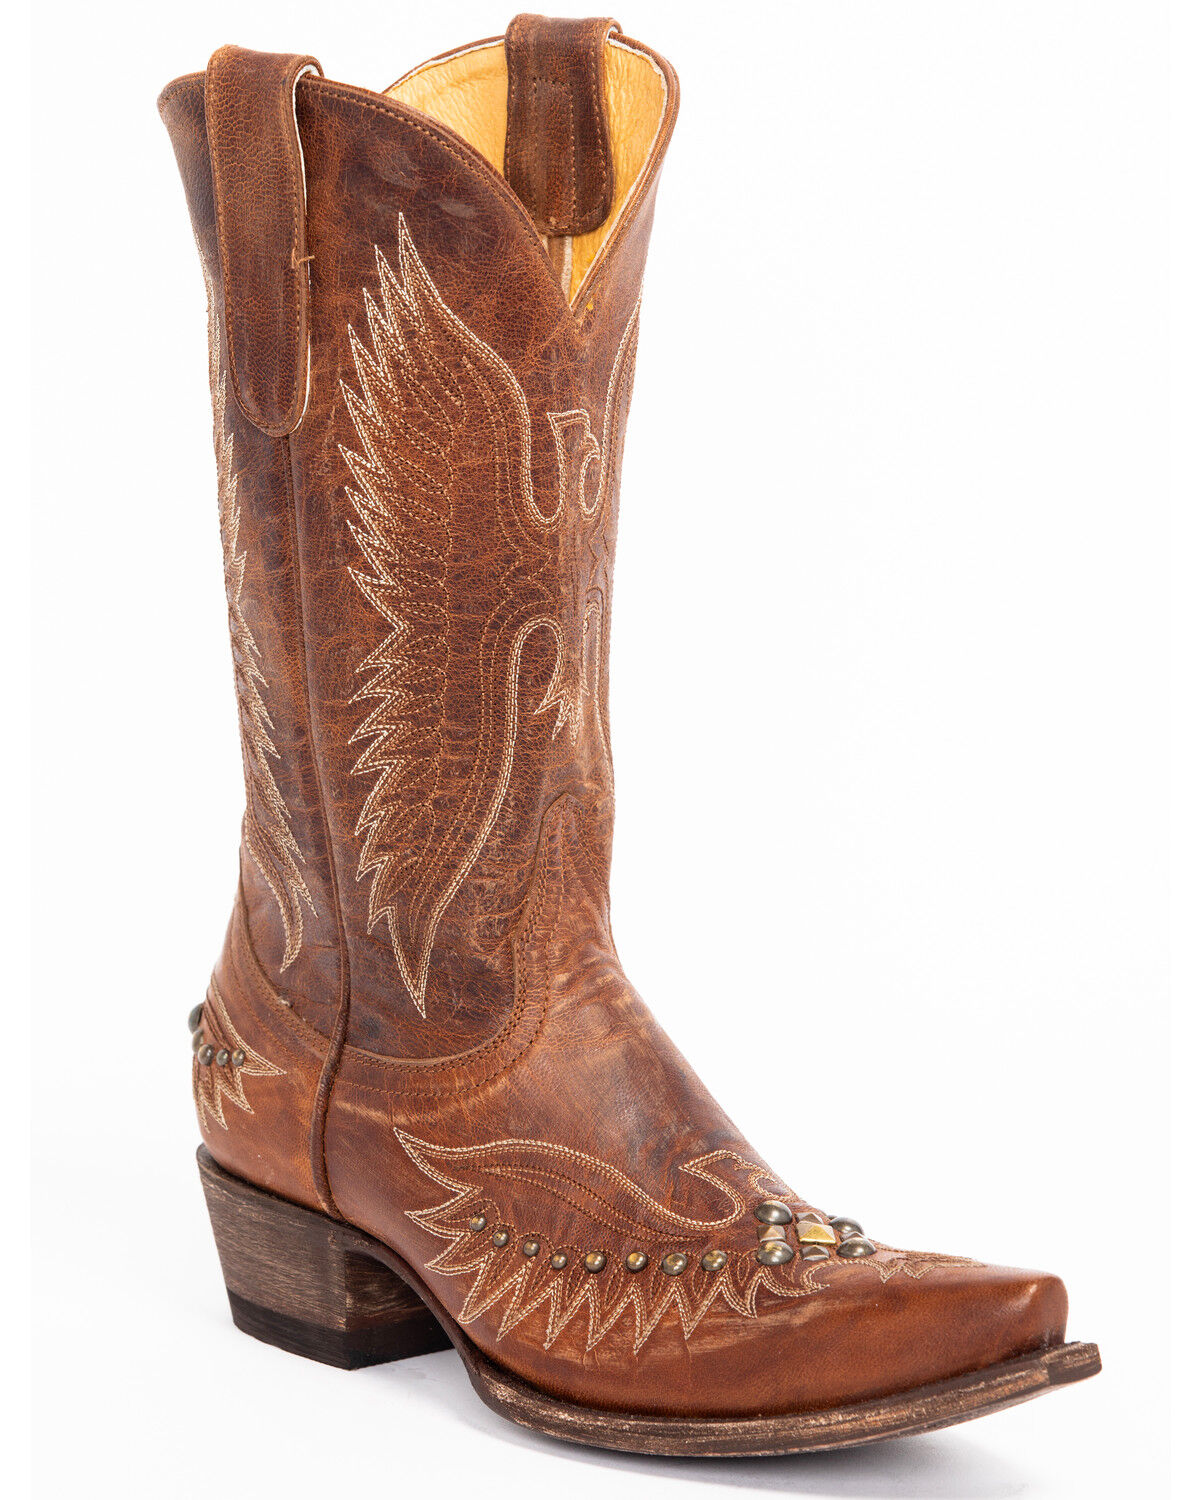 Trouble Western Boots - Snip Toe